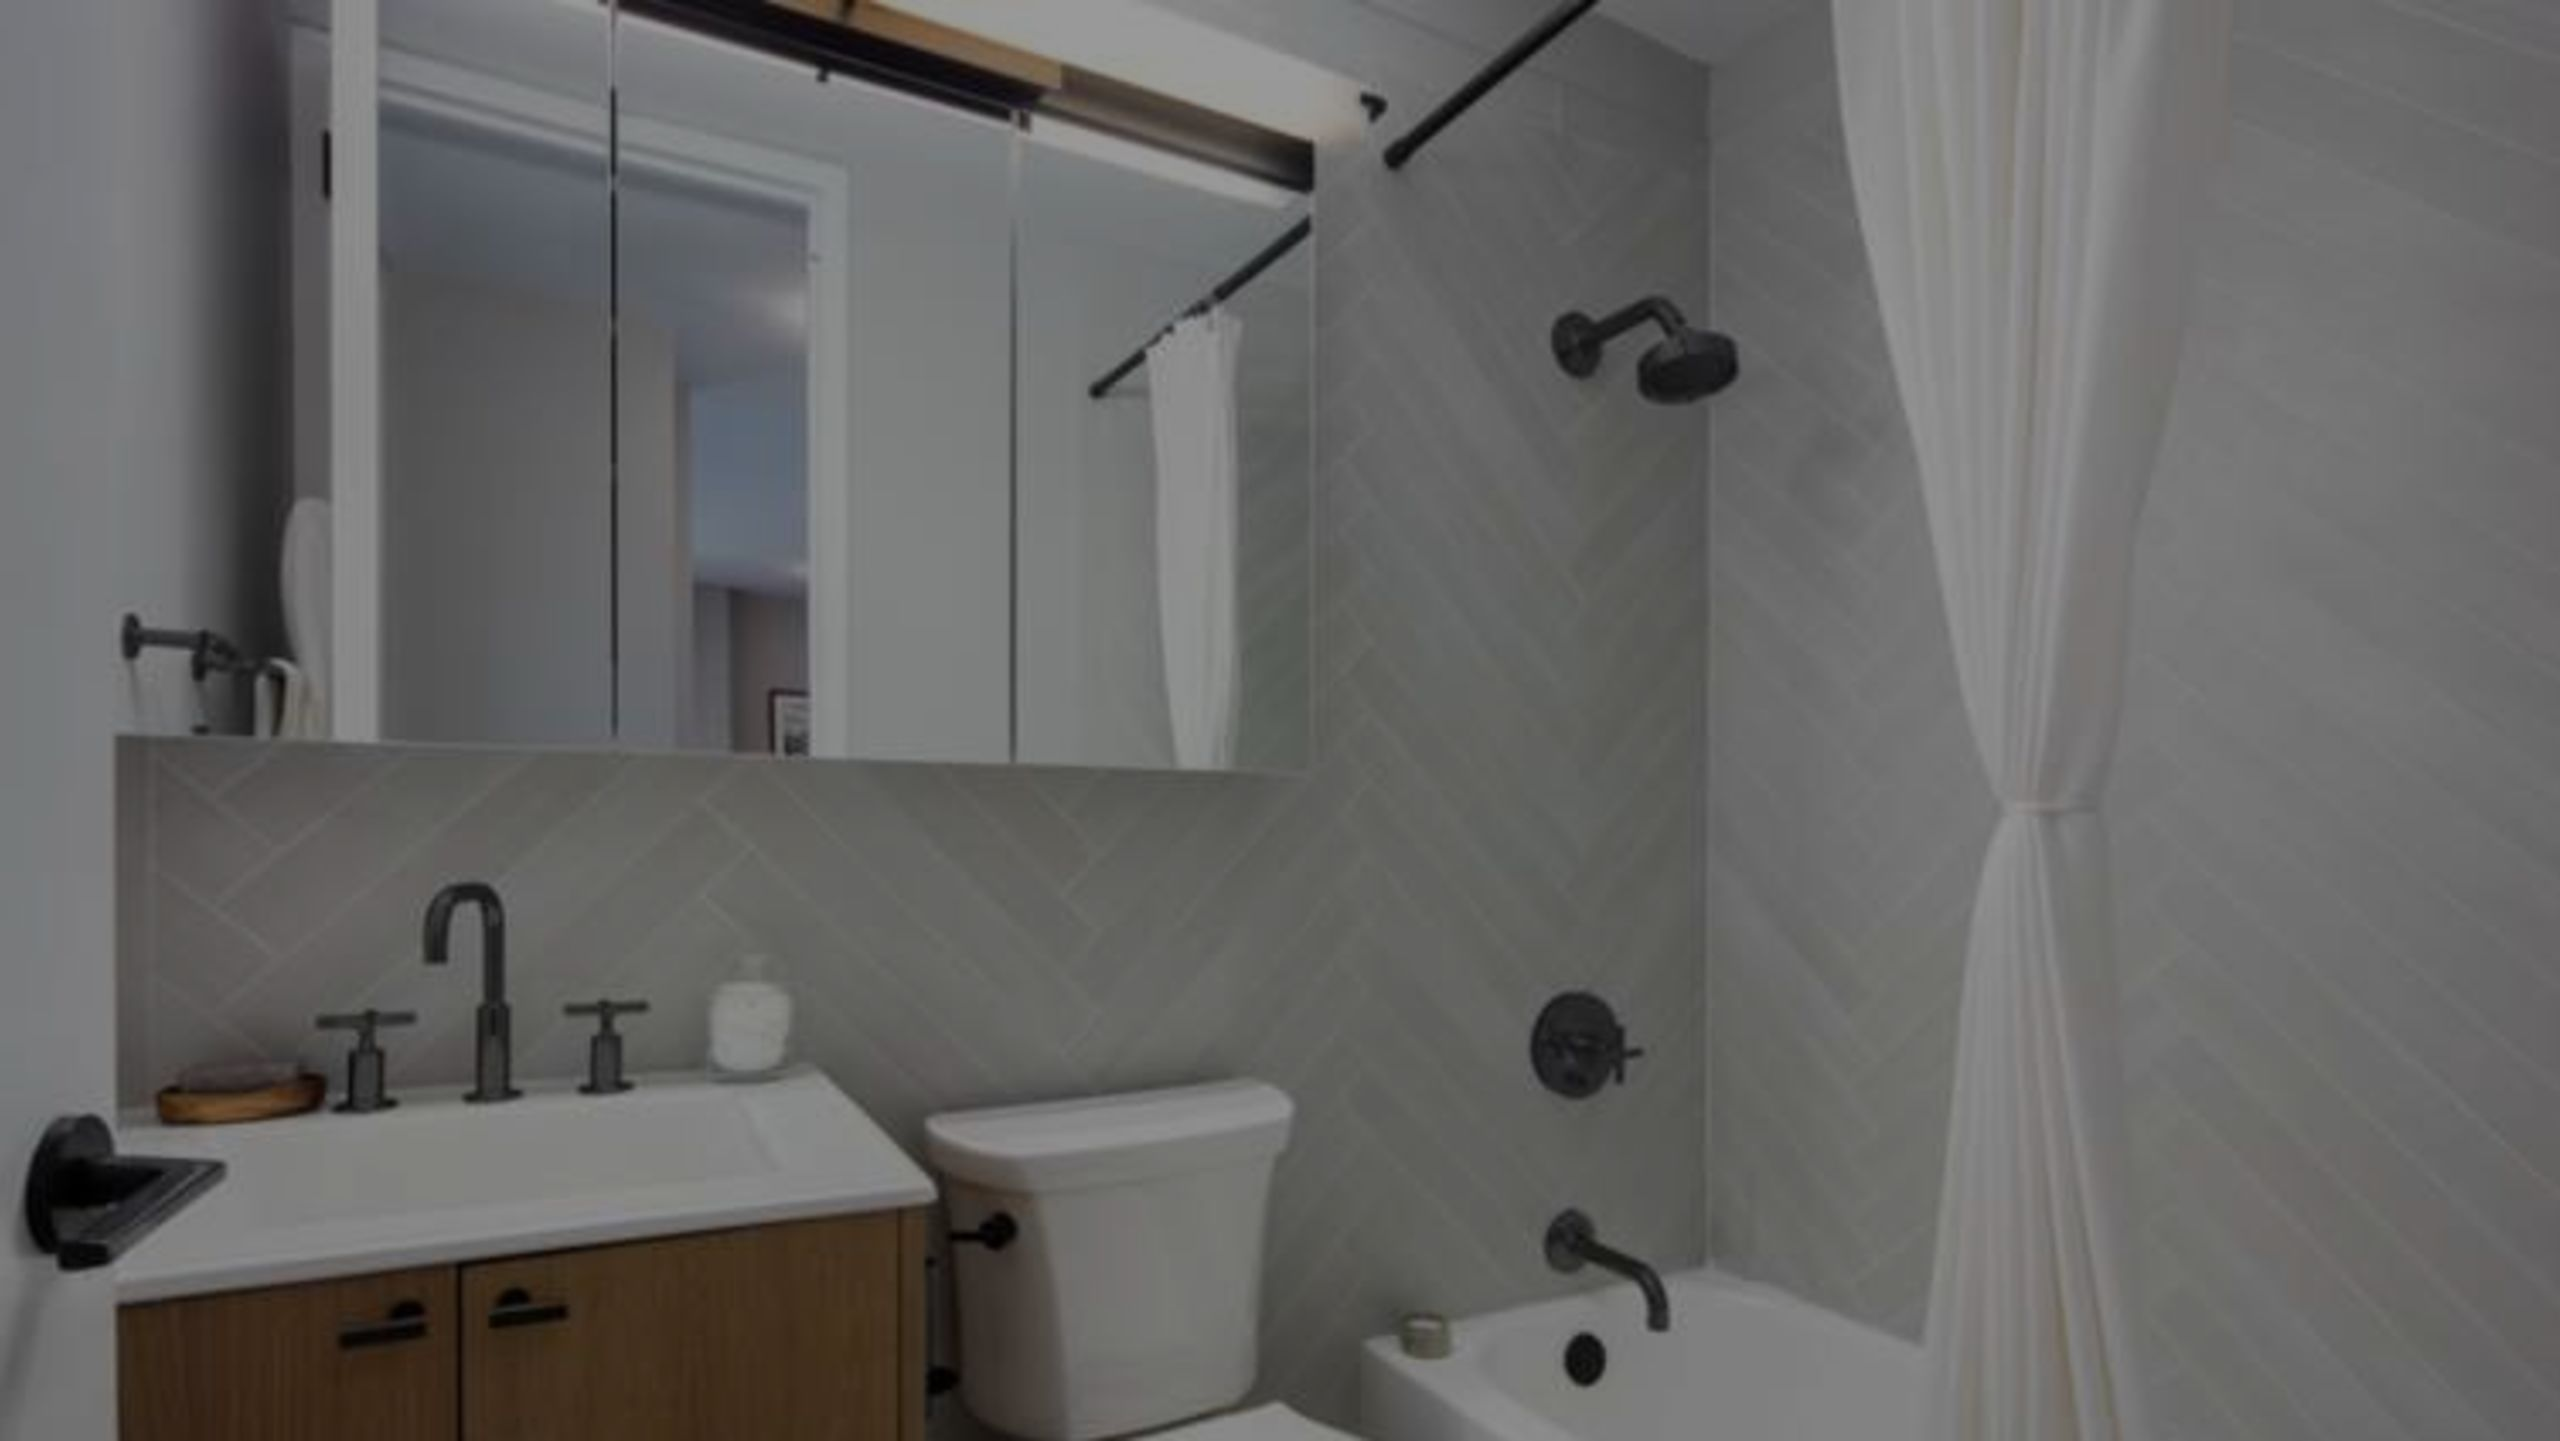 The $100 Bathroom Makeover